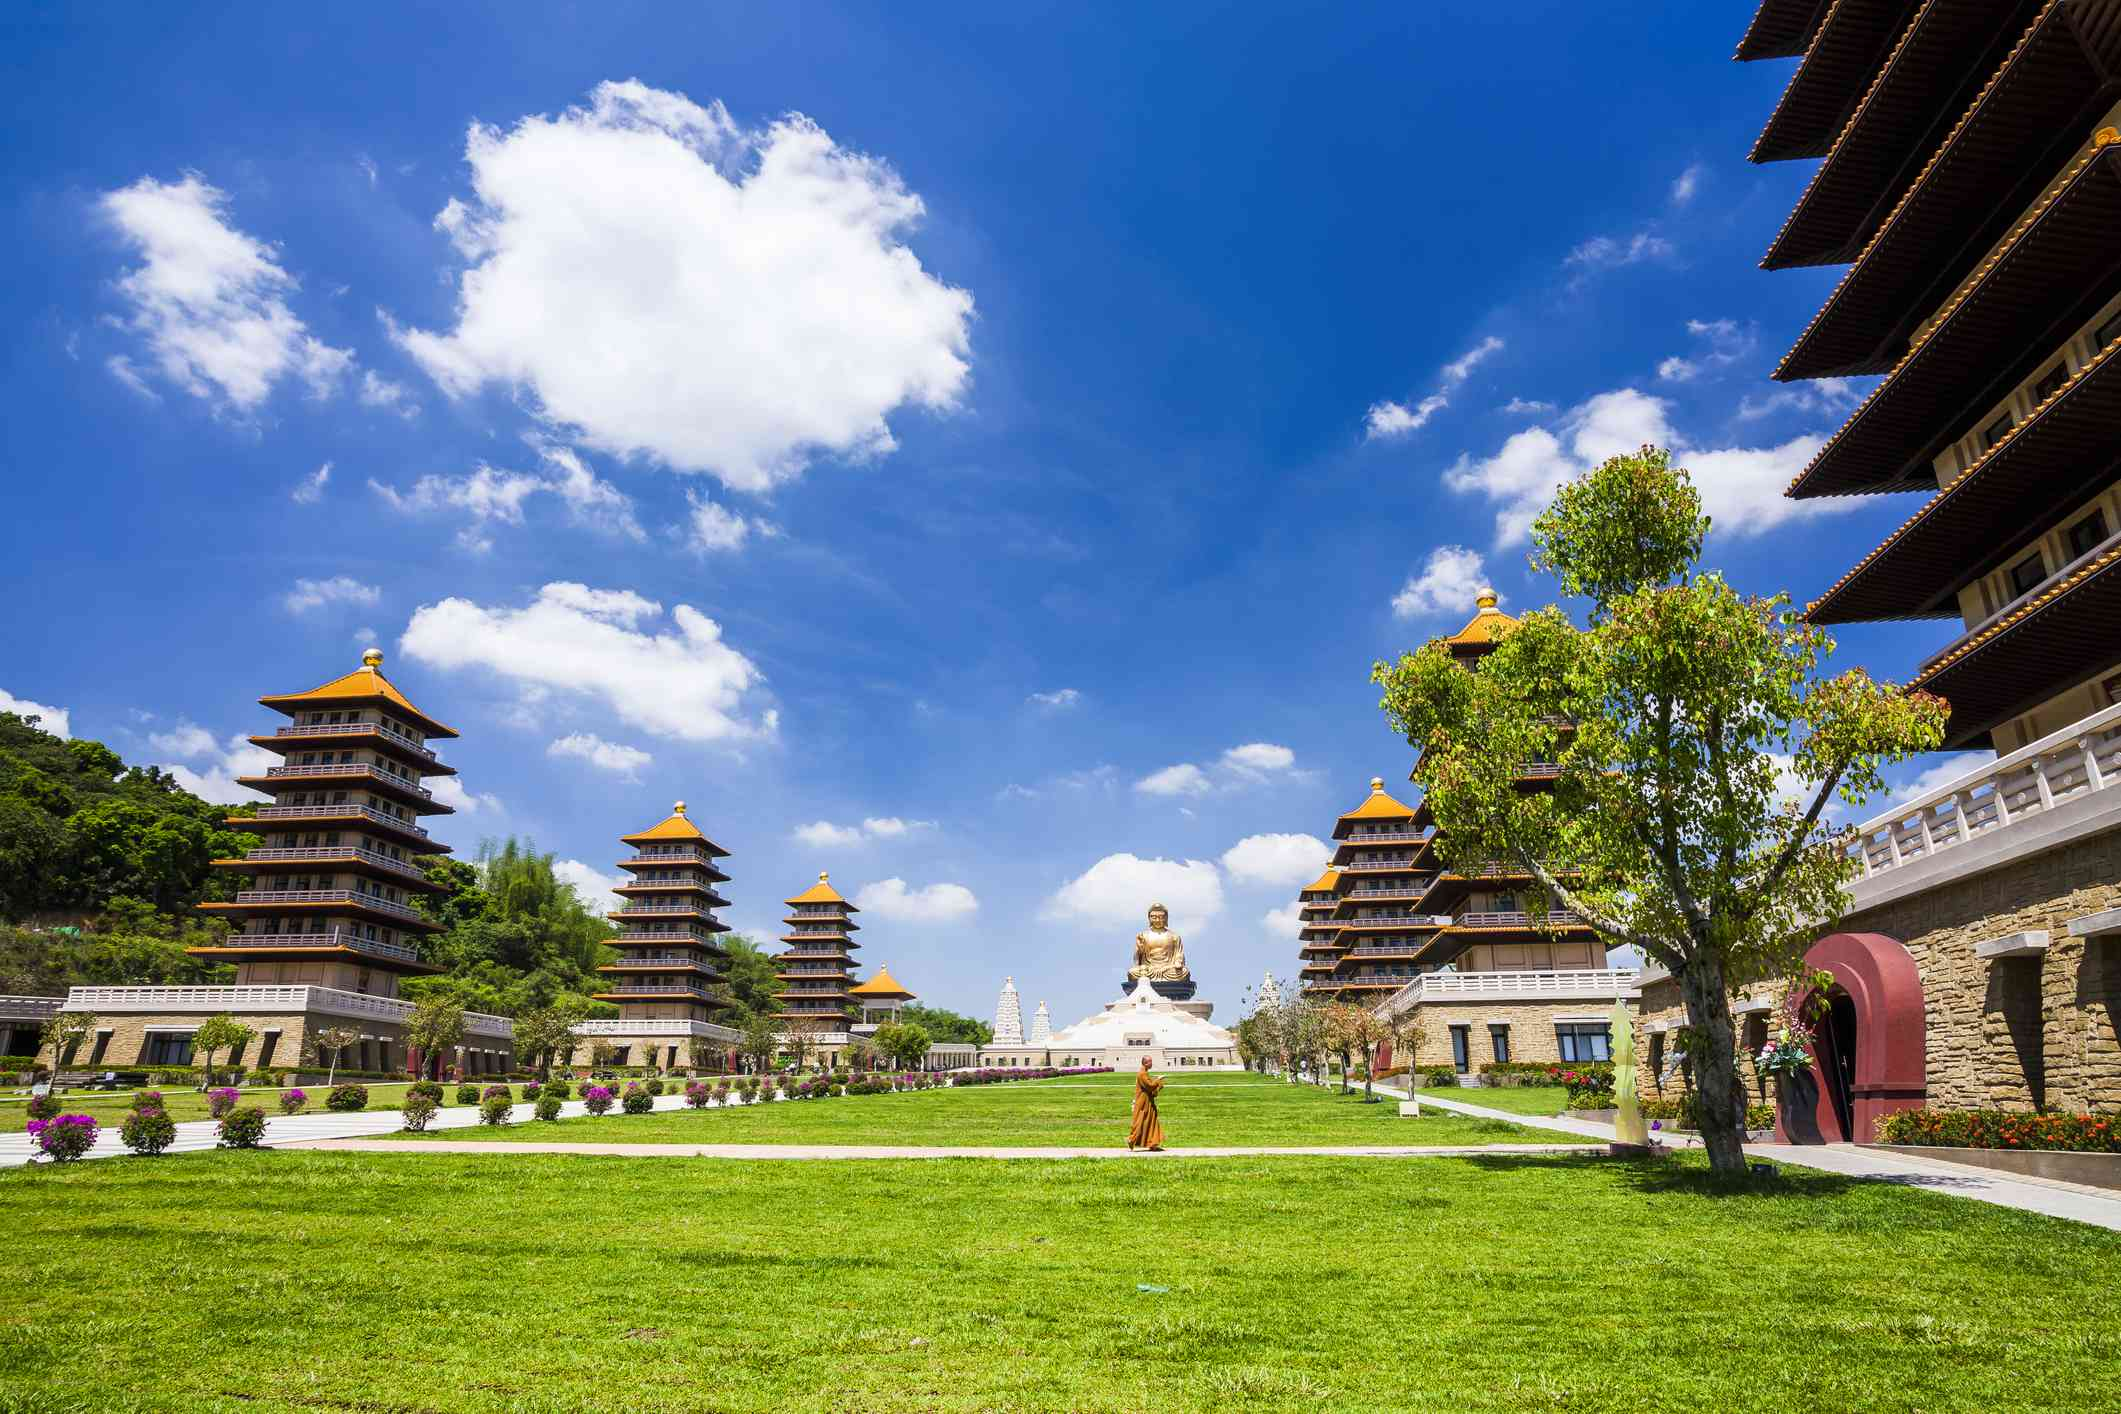 monk in orange robes walking in the Fo Guang Shan Buddha Museum campus with a large buddha statue in the background